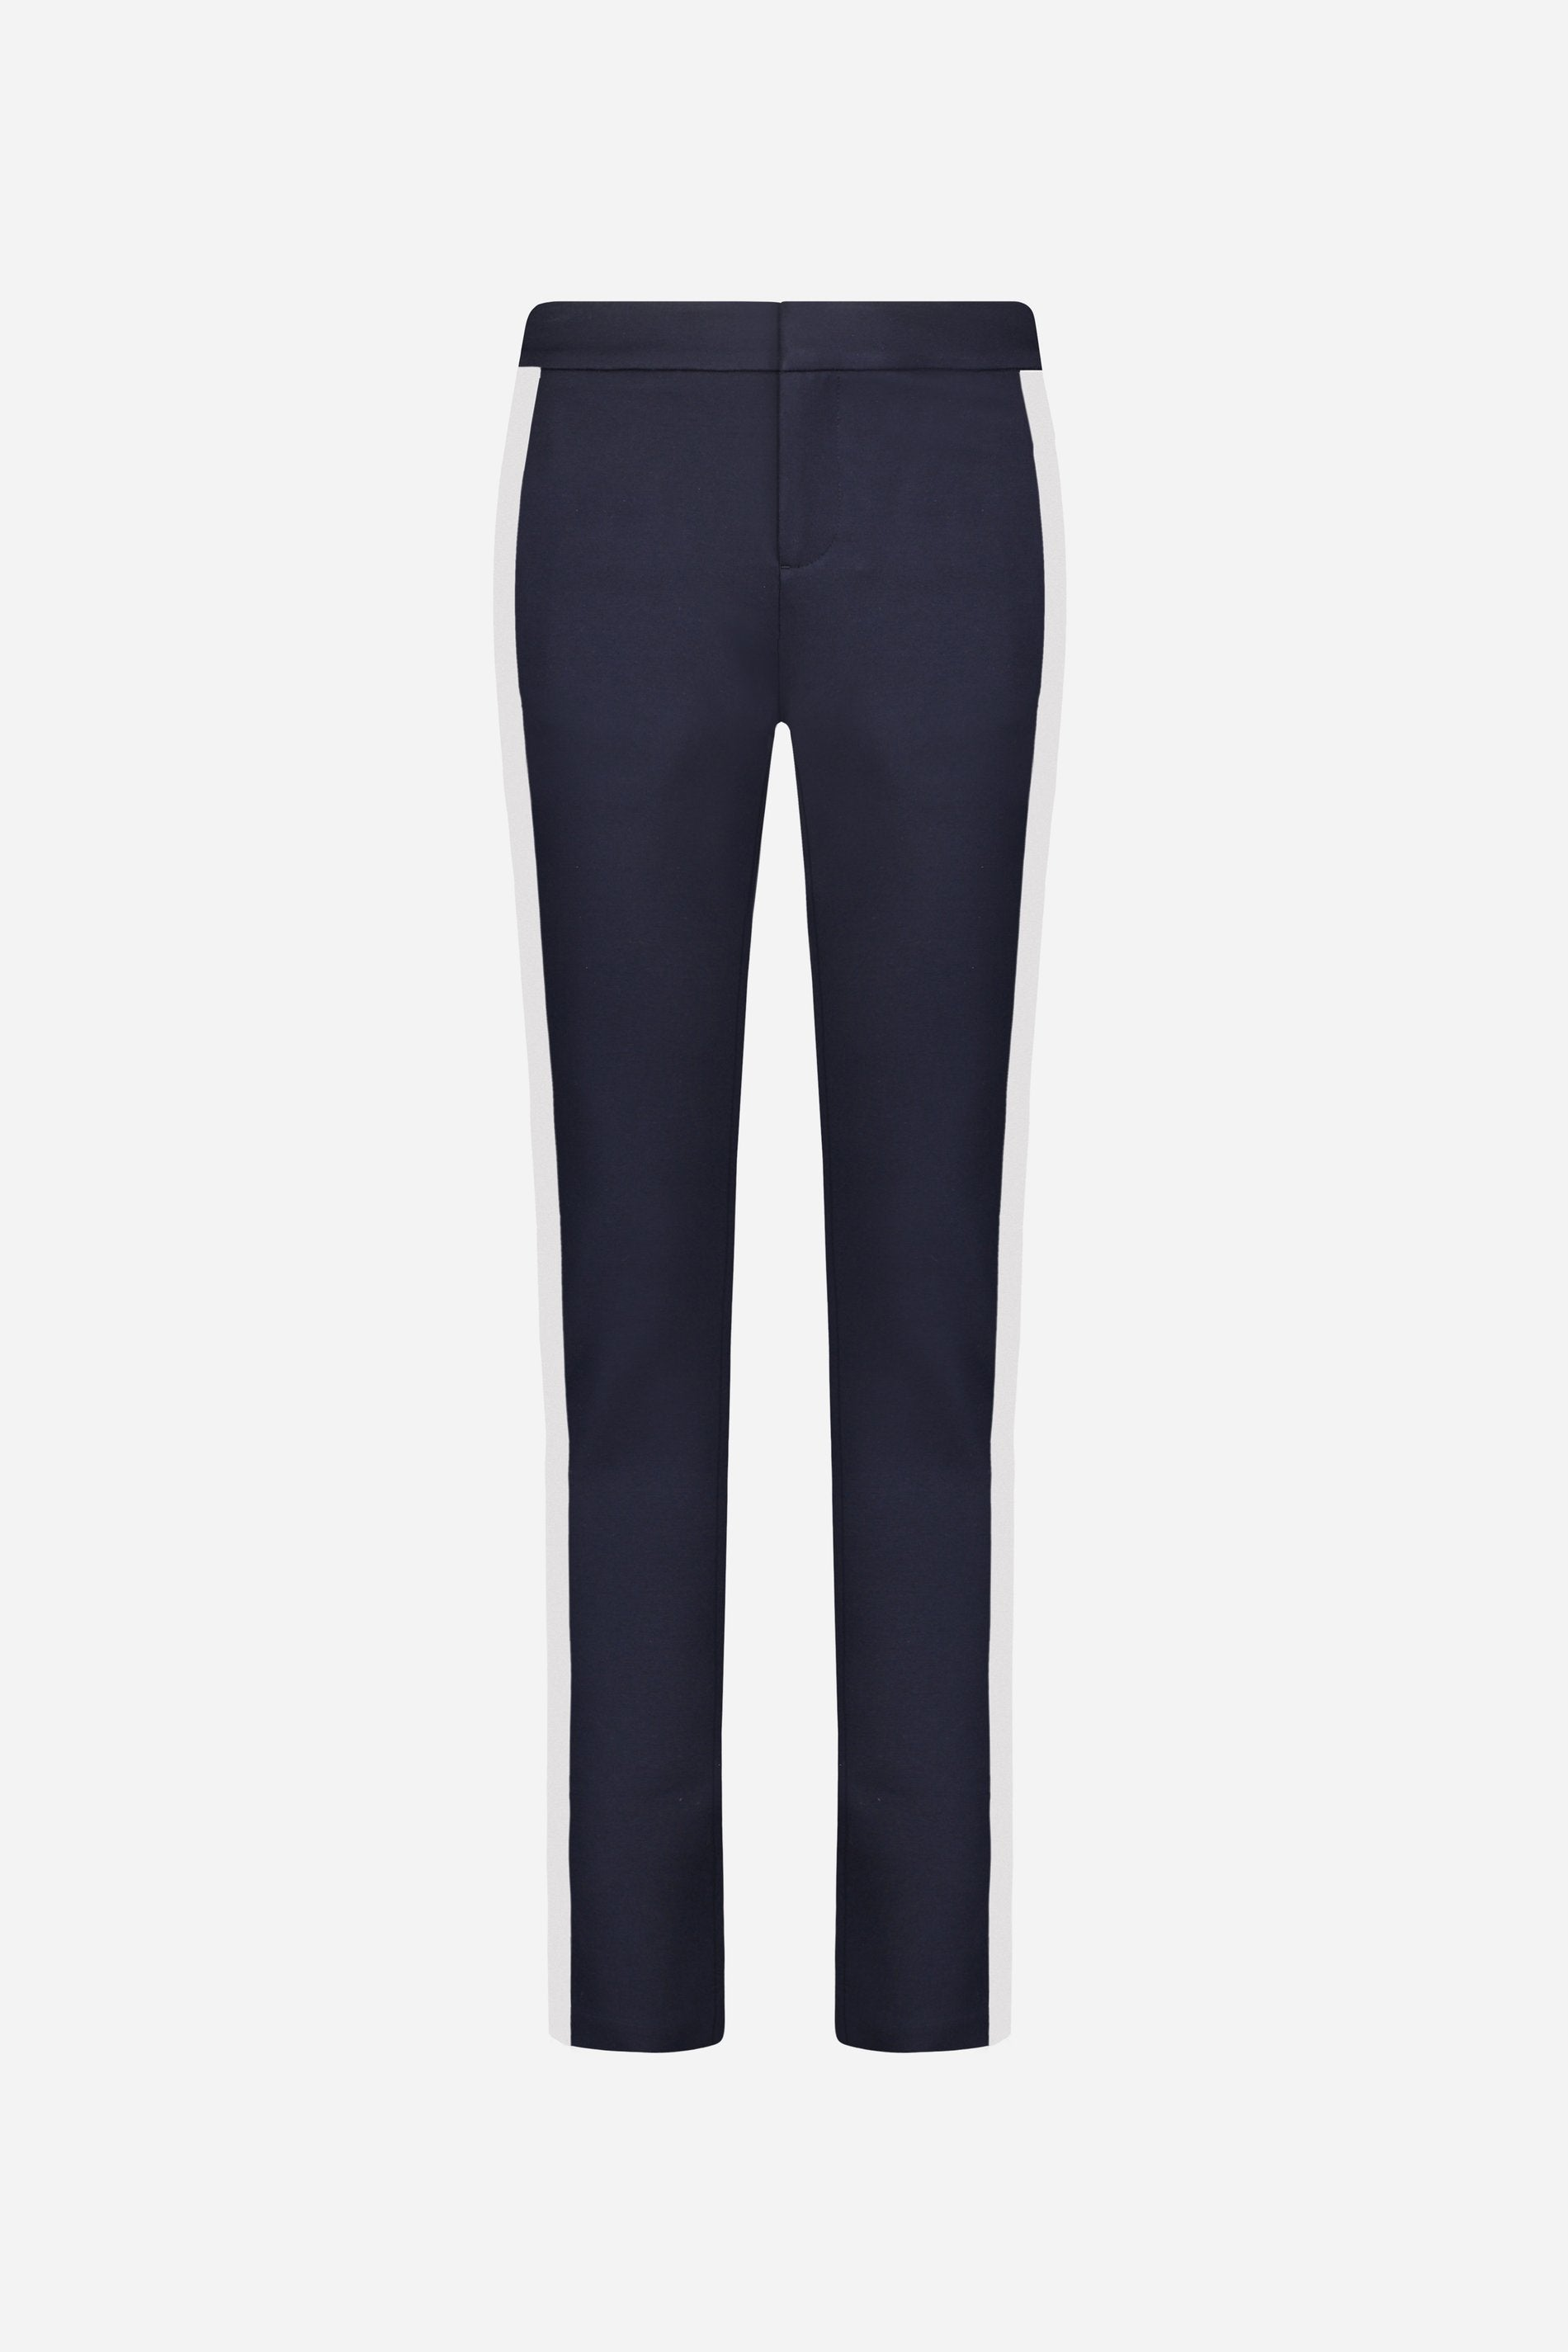 ECRU - Navy Pants with white line